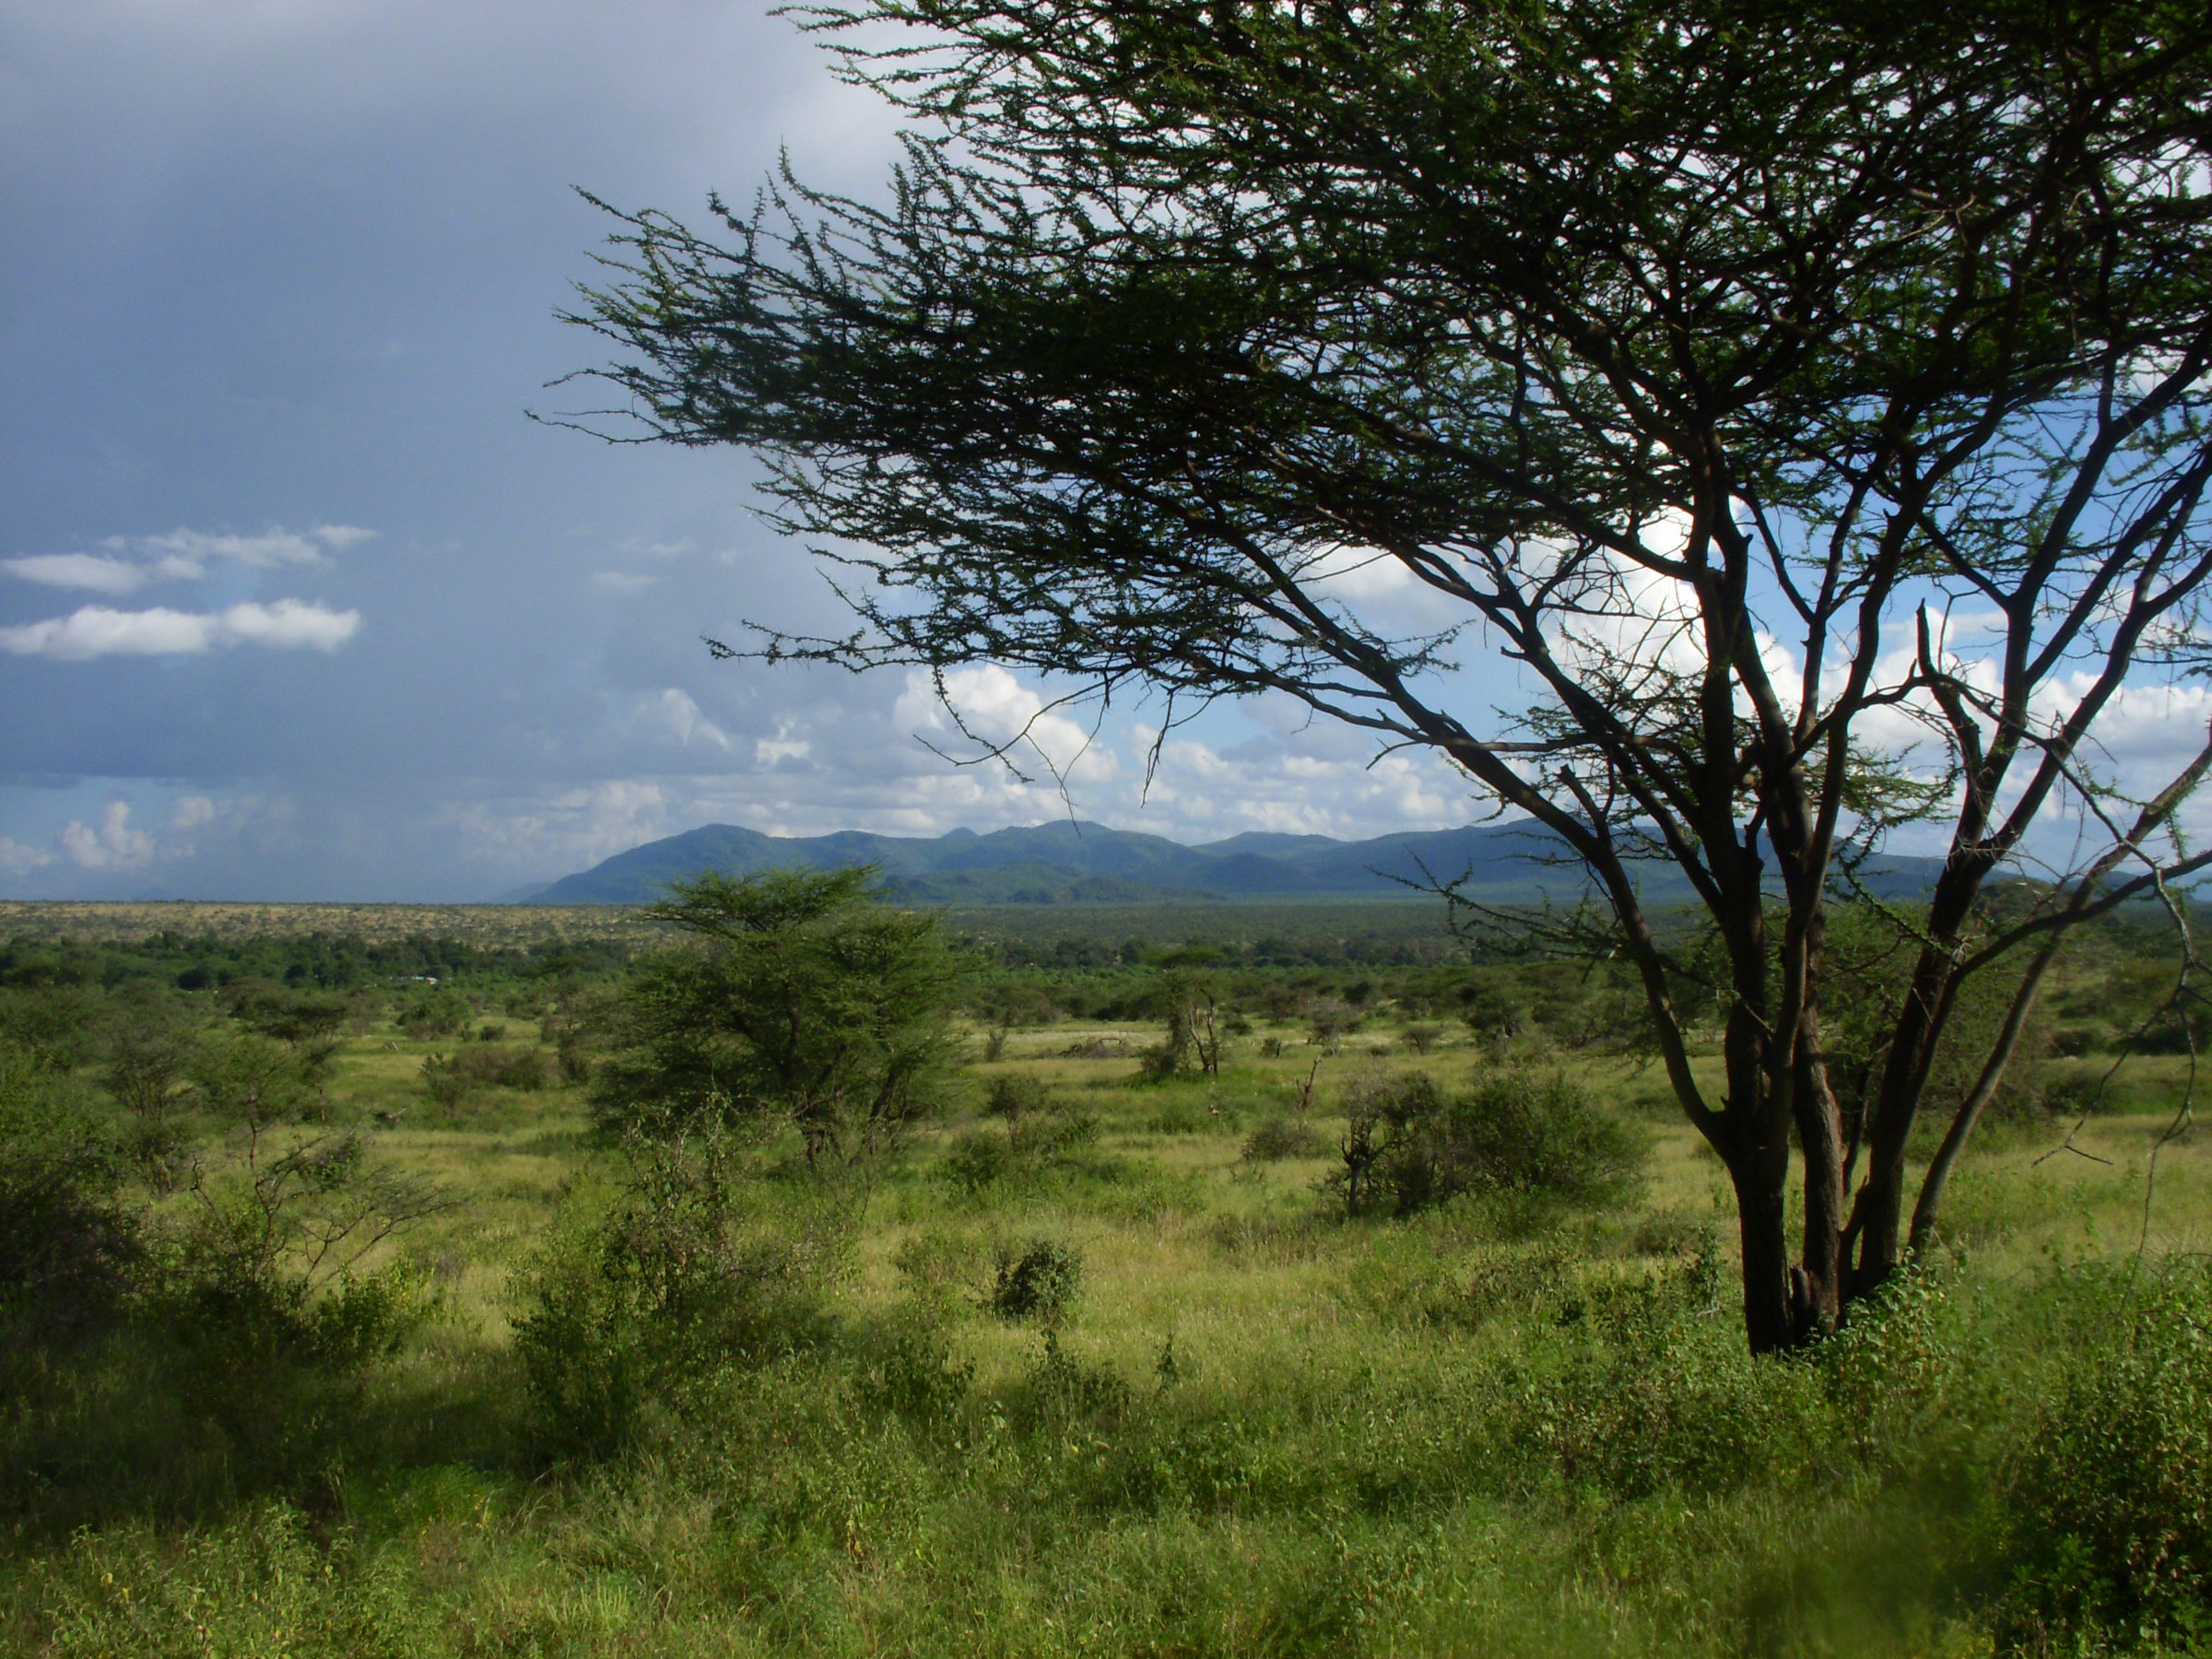 An East African savanna landscape of tree-dotted grassland is shown in this image from Samburu National Reserve in Kenya. The more heavily vegetated area in the middle distance is the corridor of the Ewaso Ngiro River. A new University of Utah study concludes that savanna was the predominant ecosystem during the evolution of human ancestors and their chimp and gorilla relatives in East Africa.